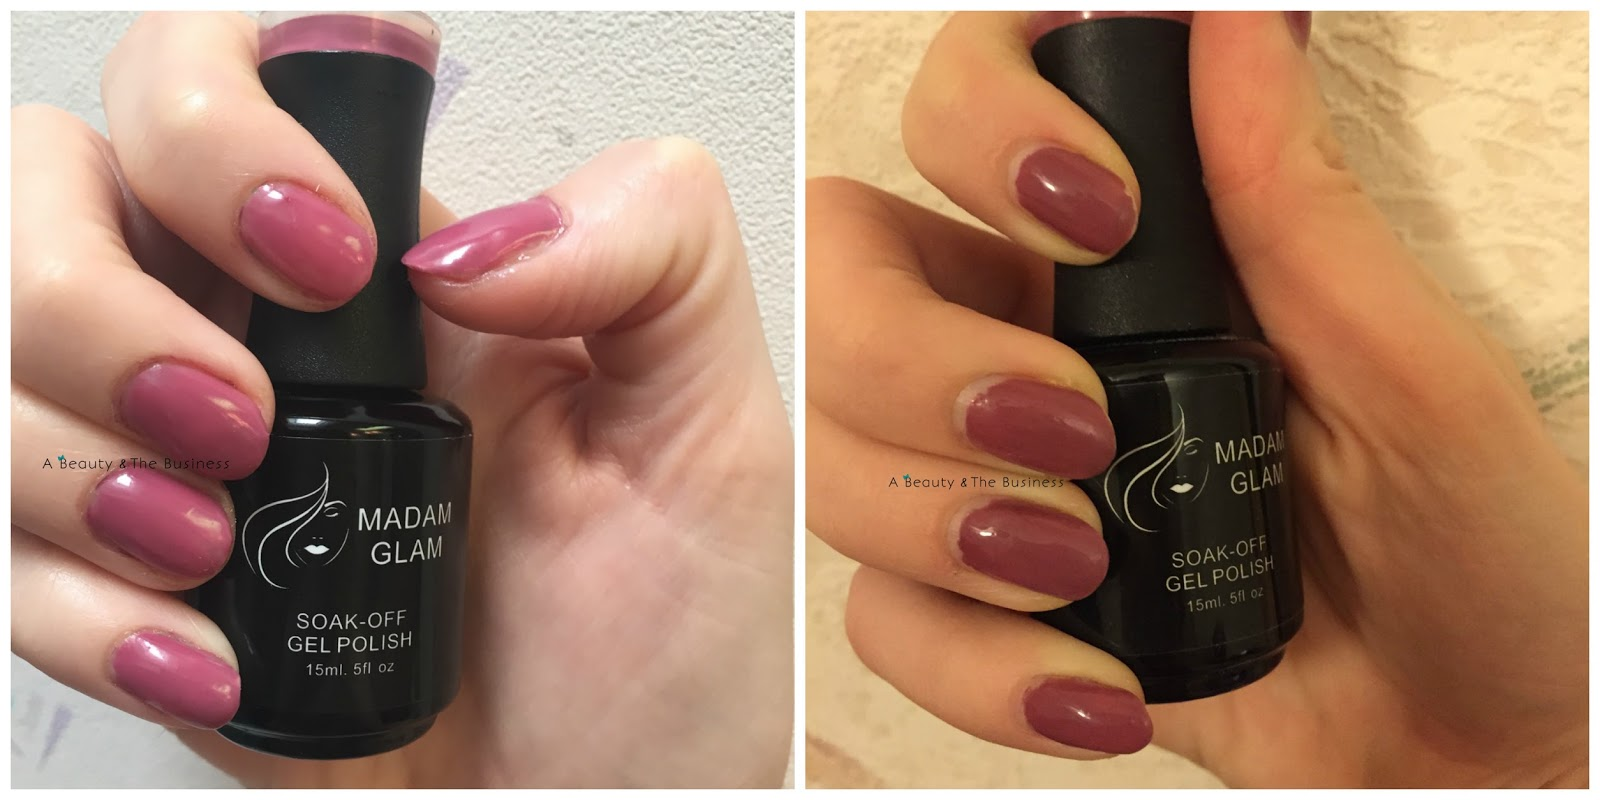 madam glam gel polish, Madam Glam Brand review, madam glam vintage pink, madam glam perfect white, madam glam pop goes my heart, madam glam swatches, a beauty and the business,